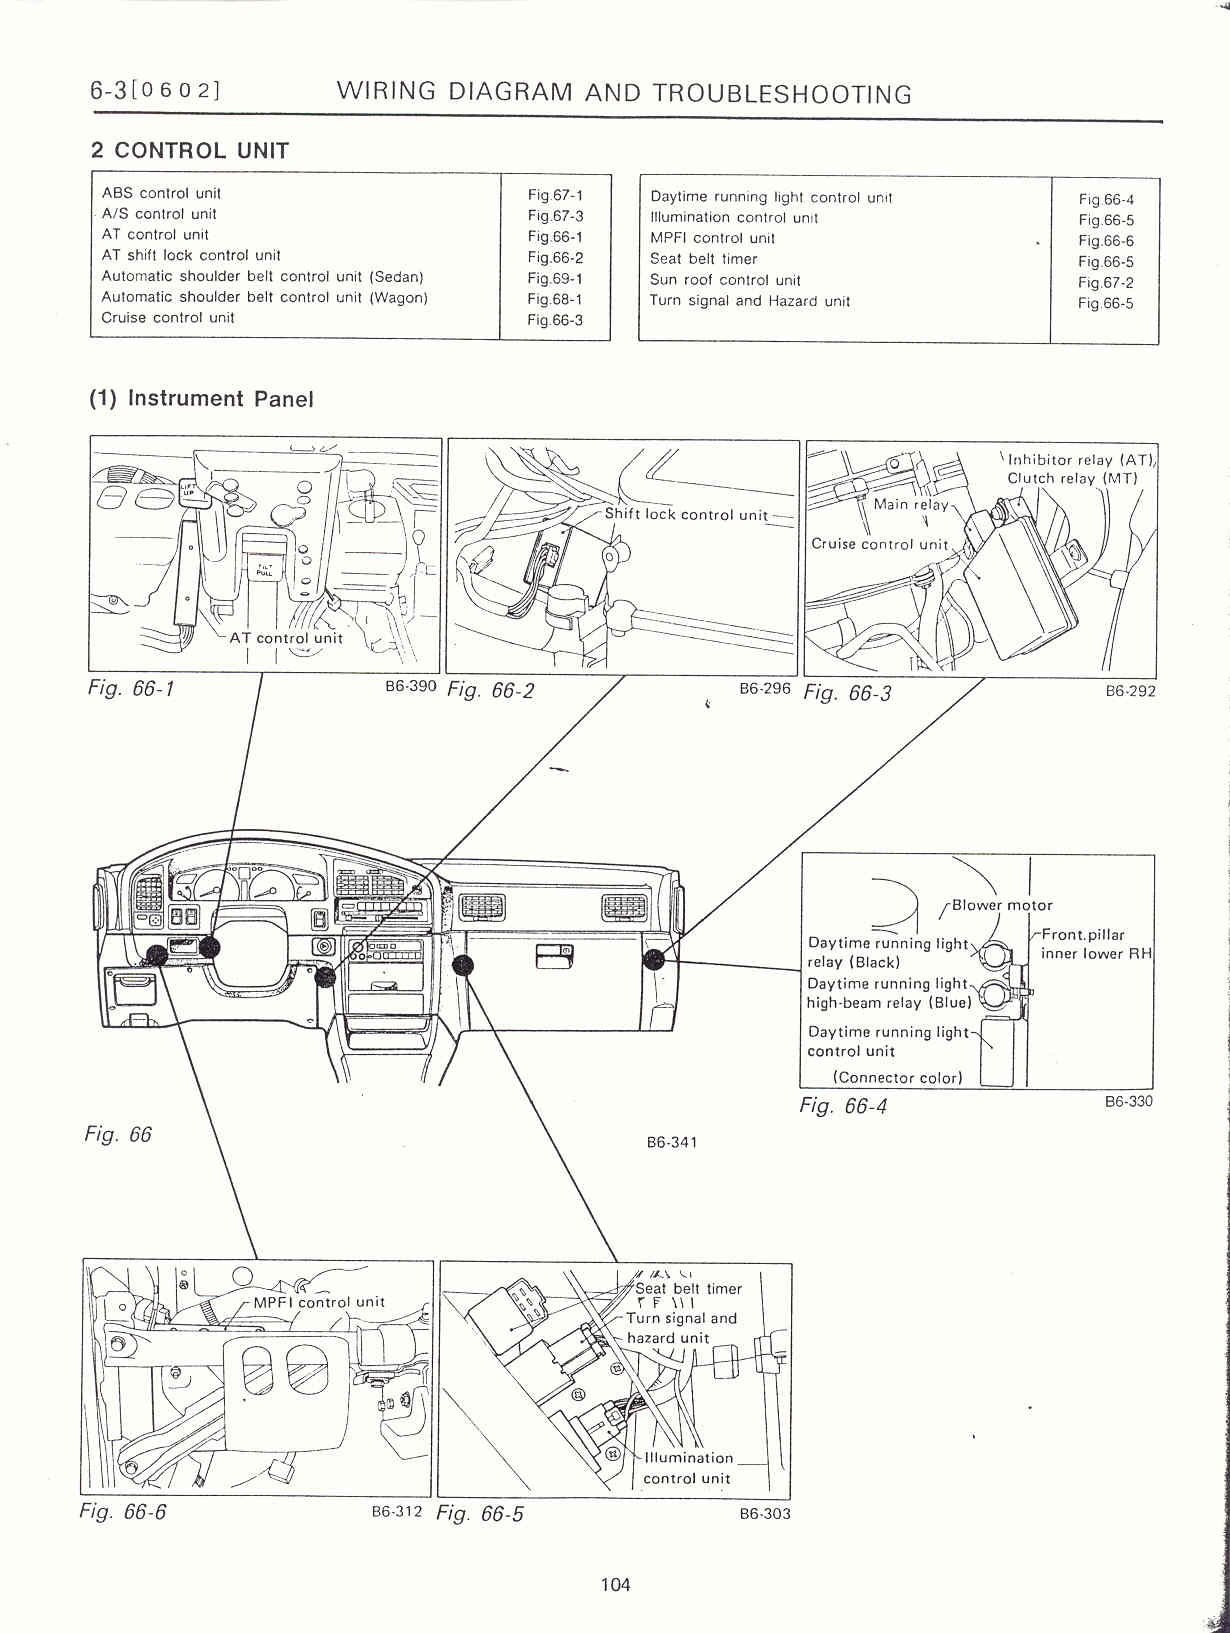 combination switch wiring diagram intertherm electric furnace surrealmirage - subaru legacy swap electrical info & notes